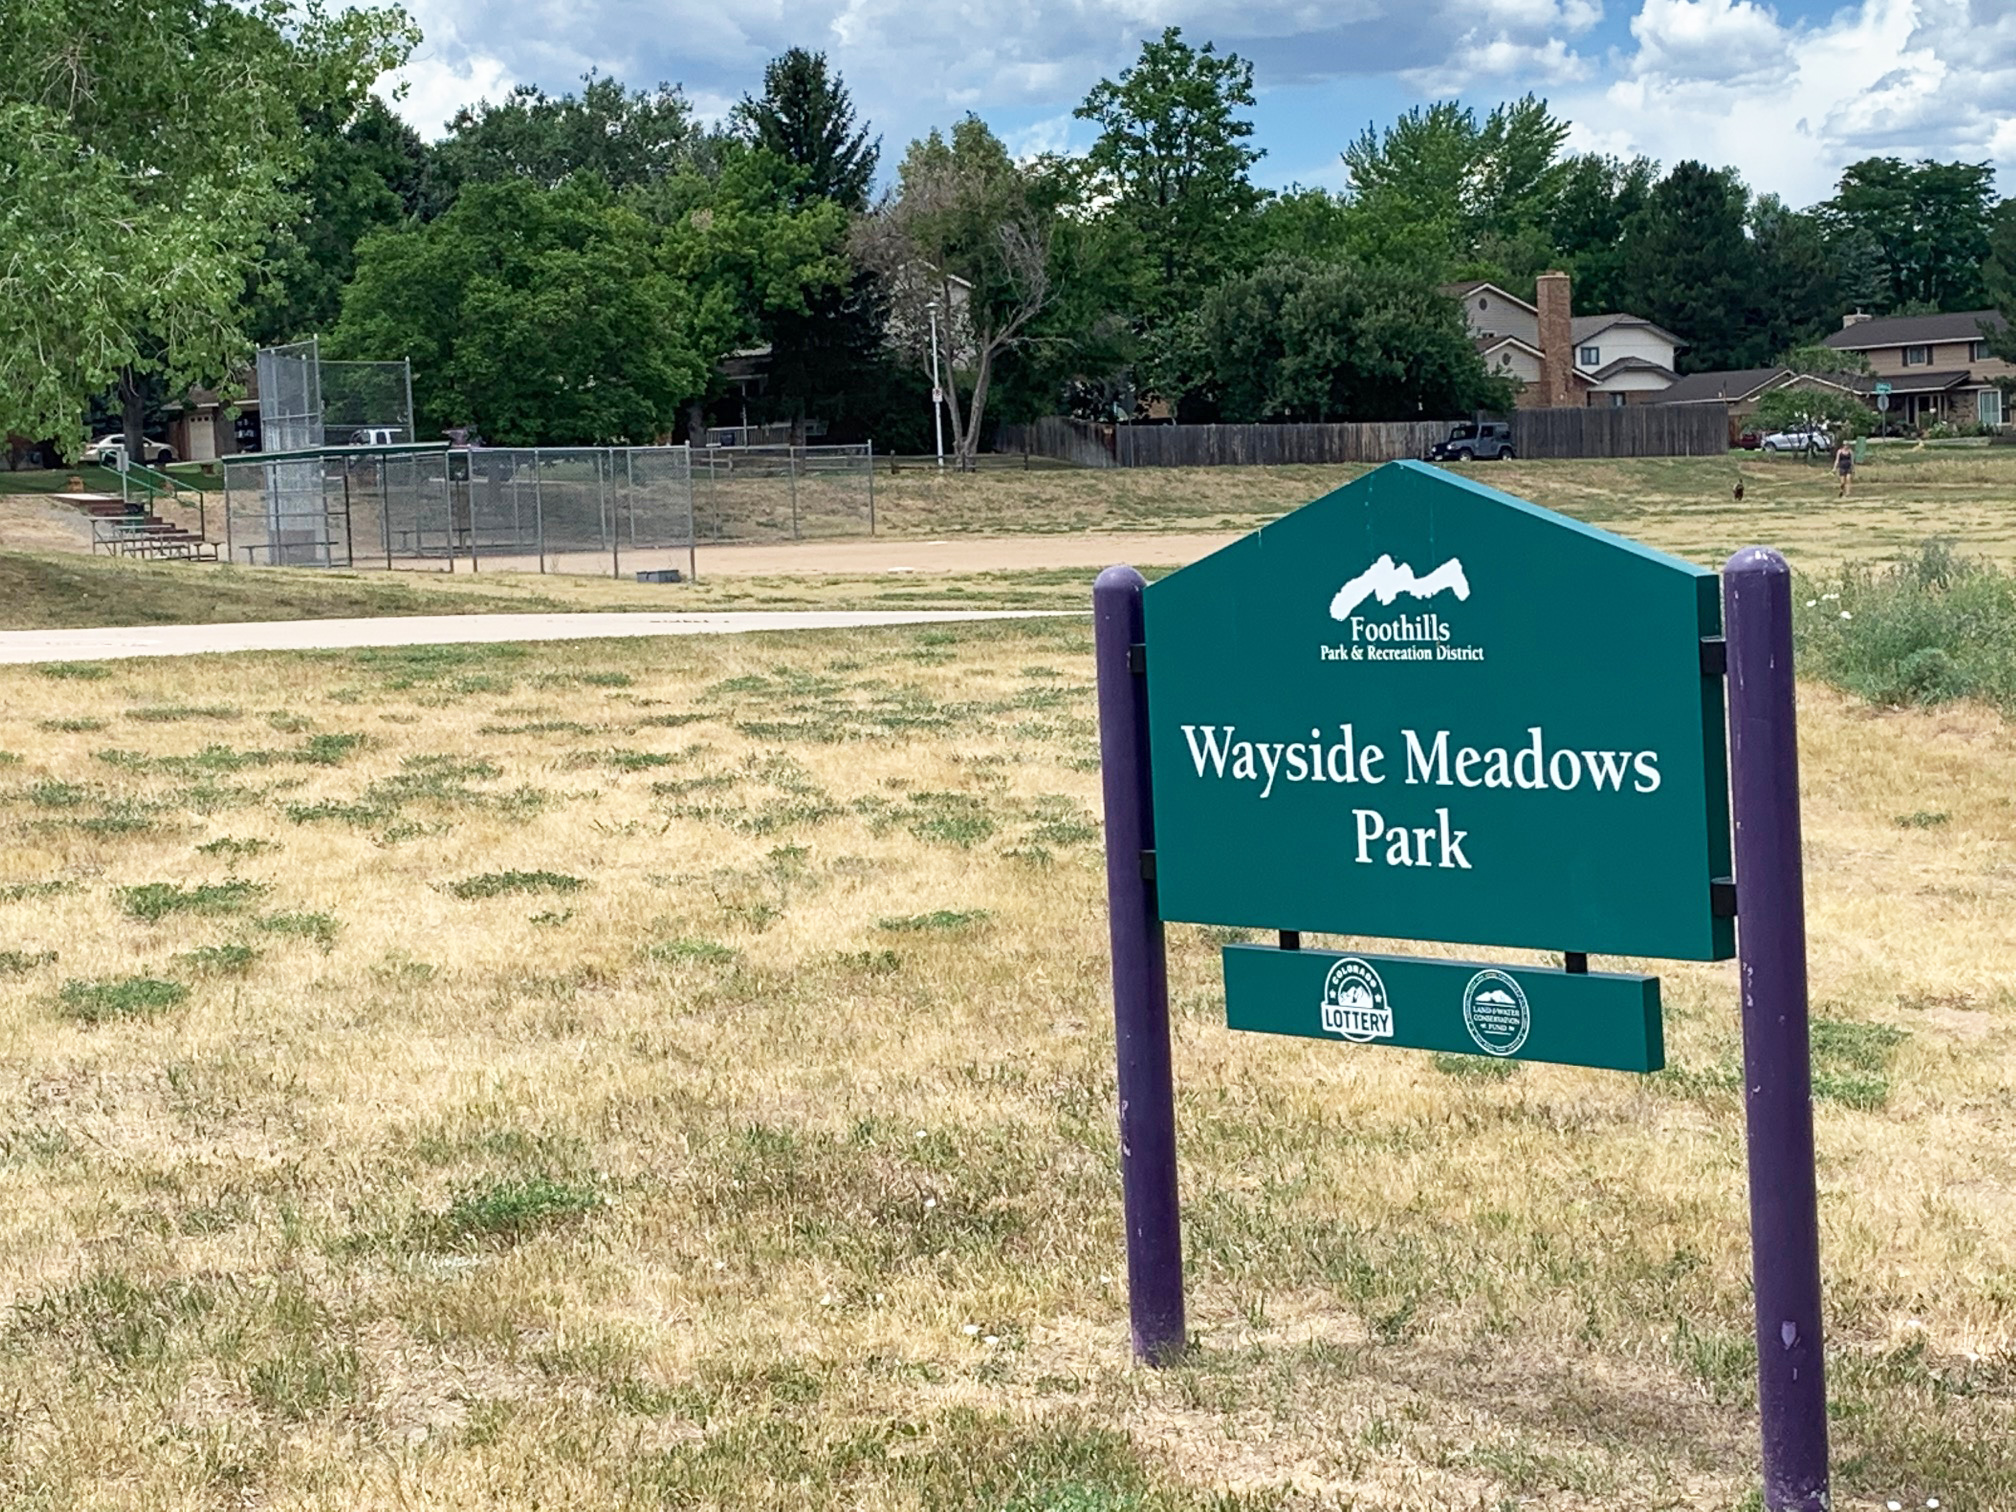 Close to Wayside Meadows Park & Ball Field